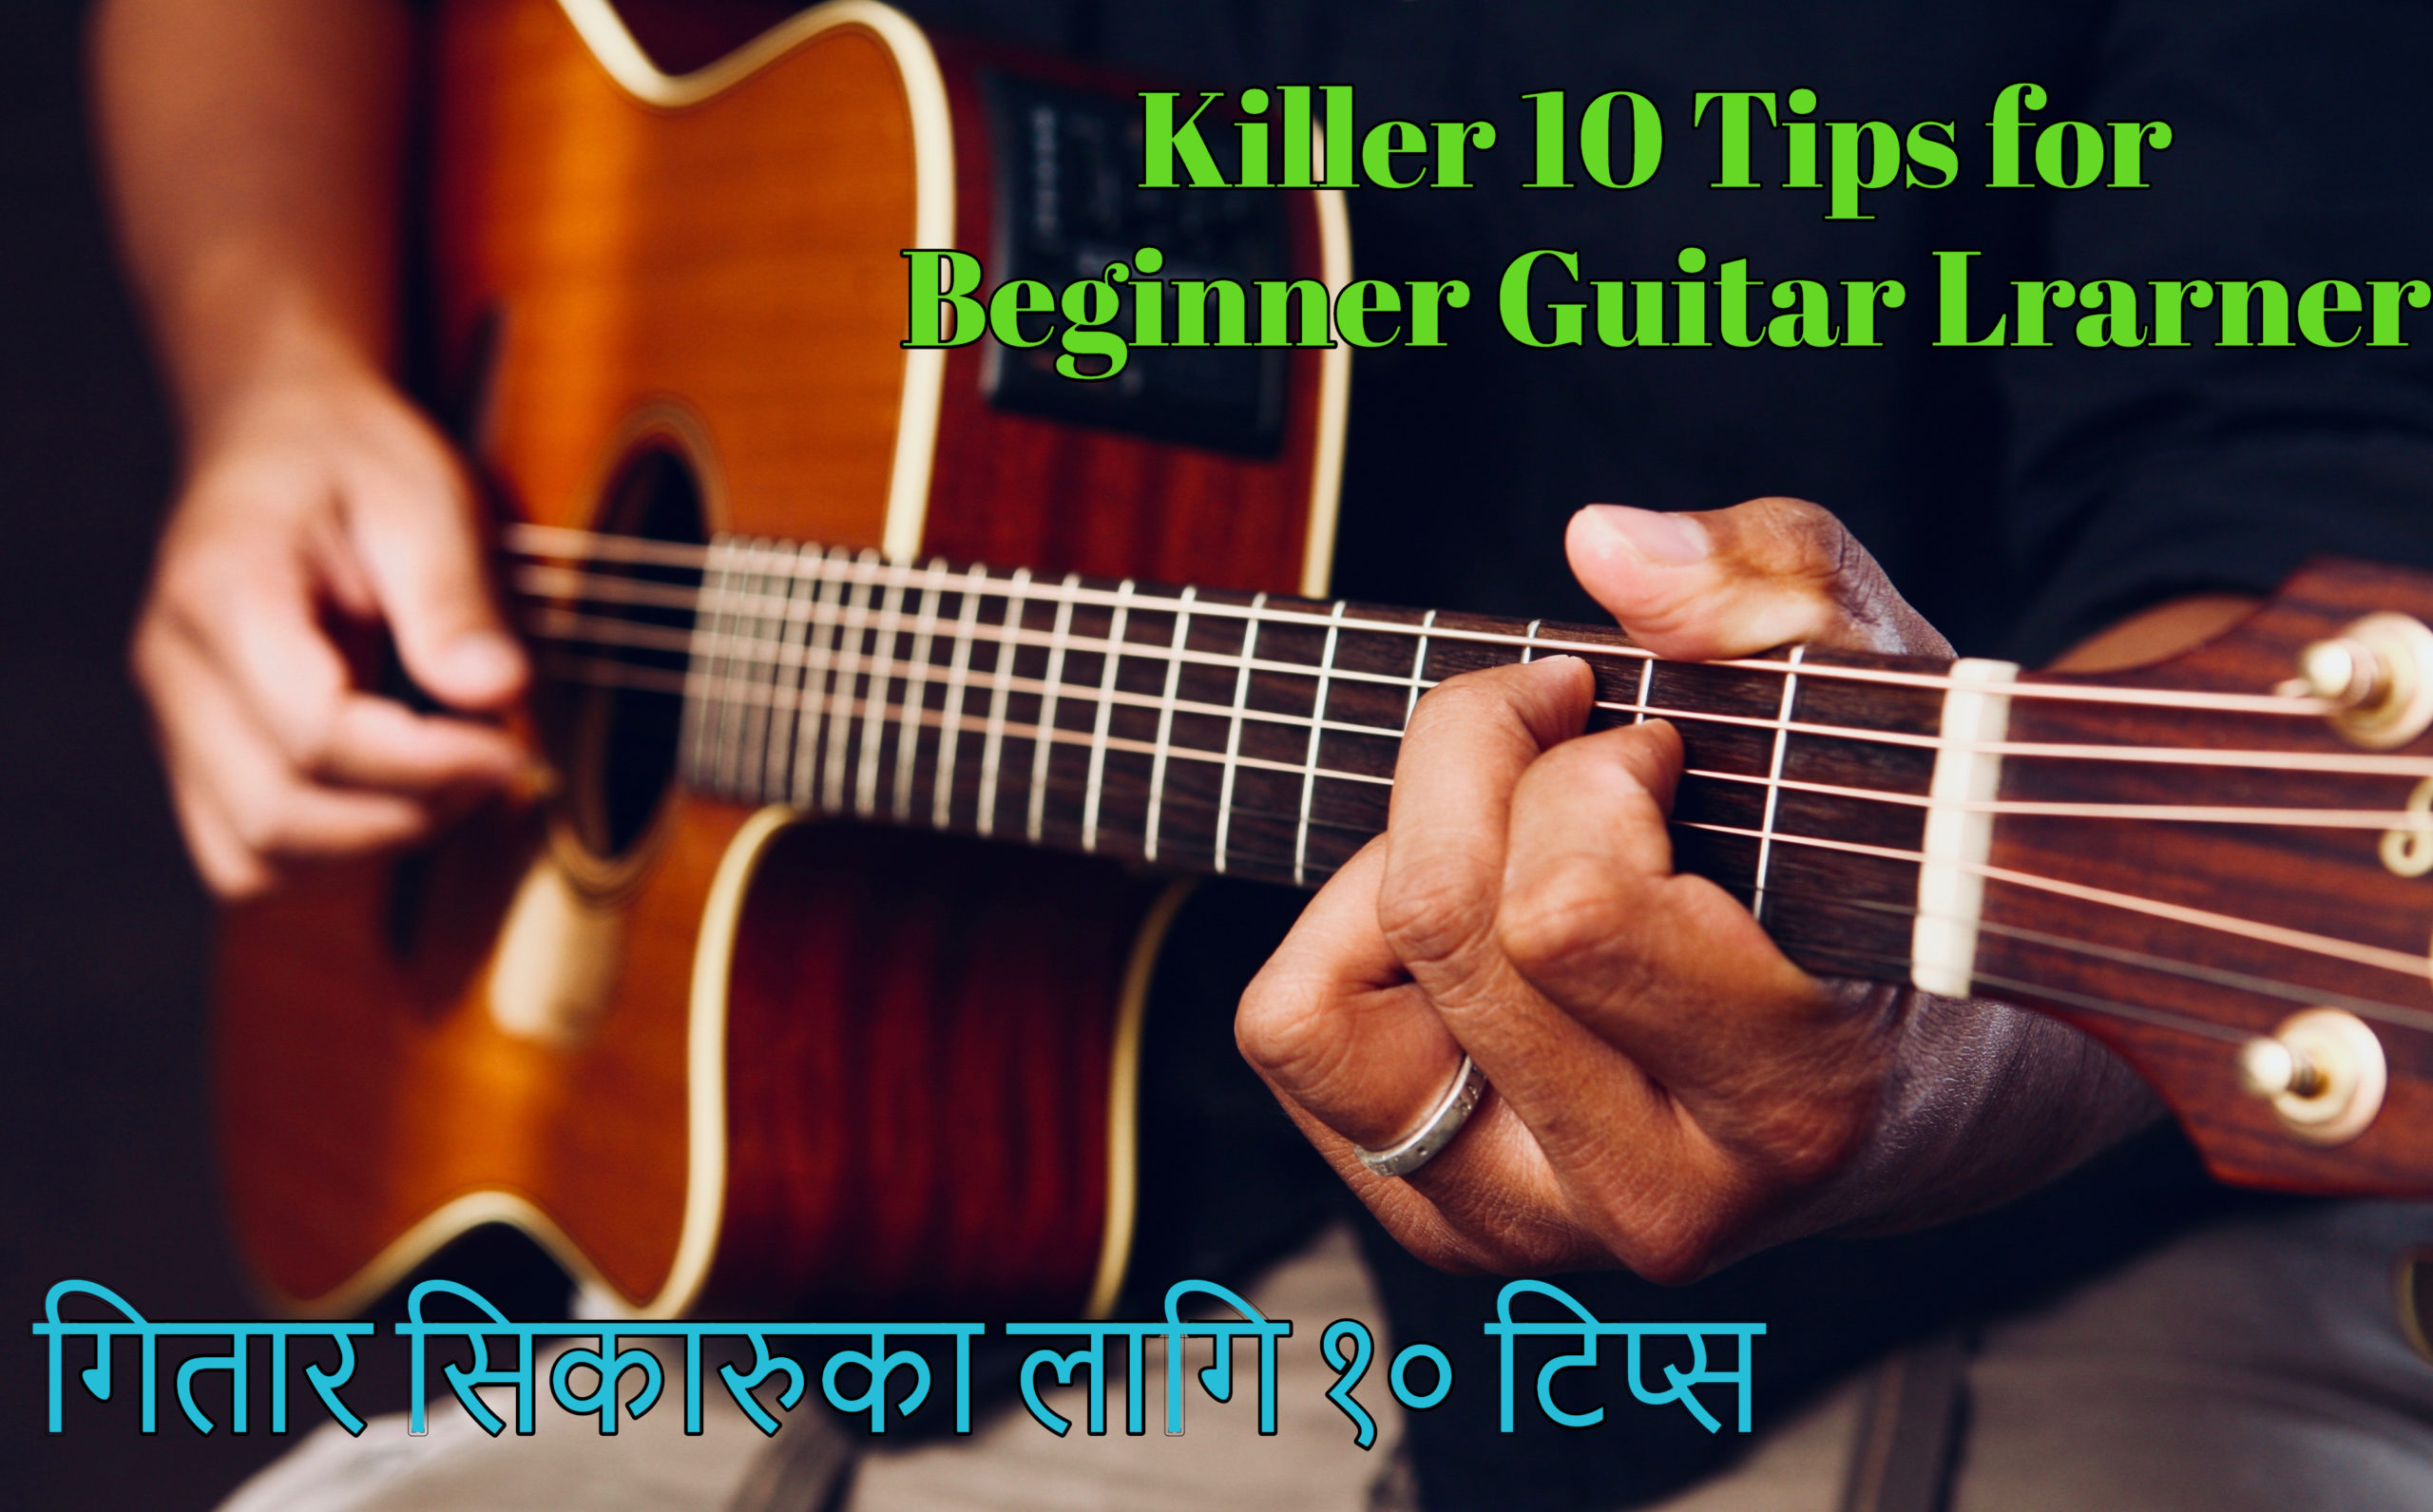 गितार सिकारुका लागि १० टिप्सहरु _ 10 Tips for Beginner Guitar Learner _ First 10 Things Beginner Should Learn